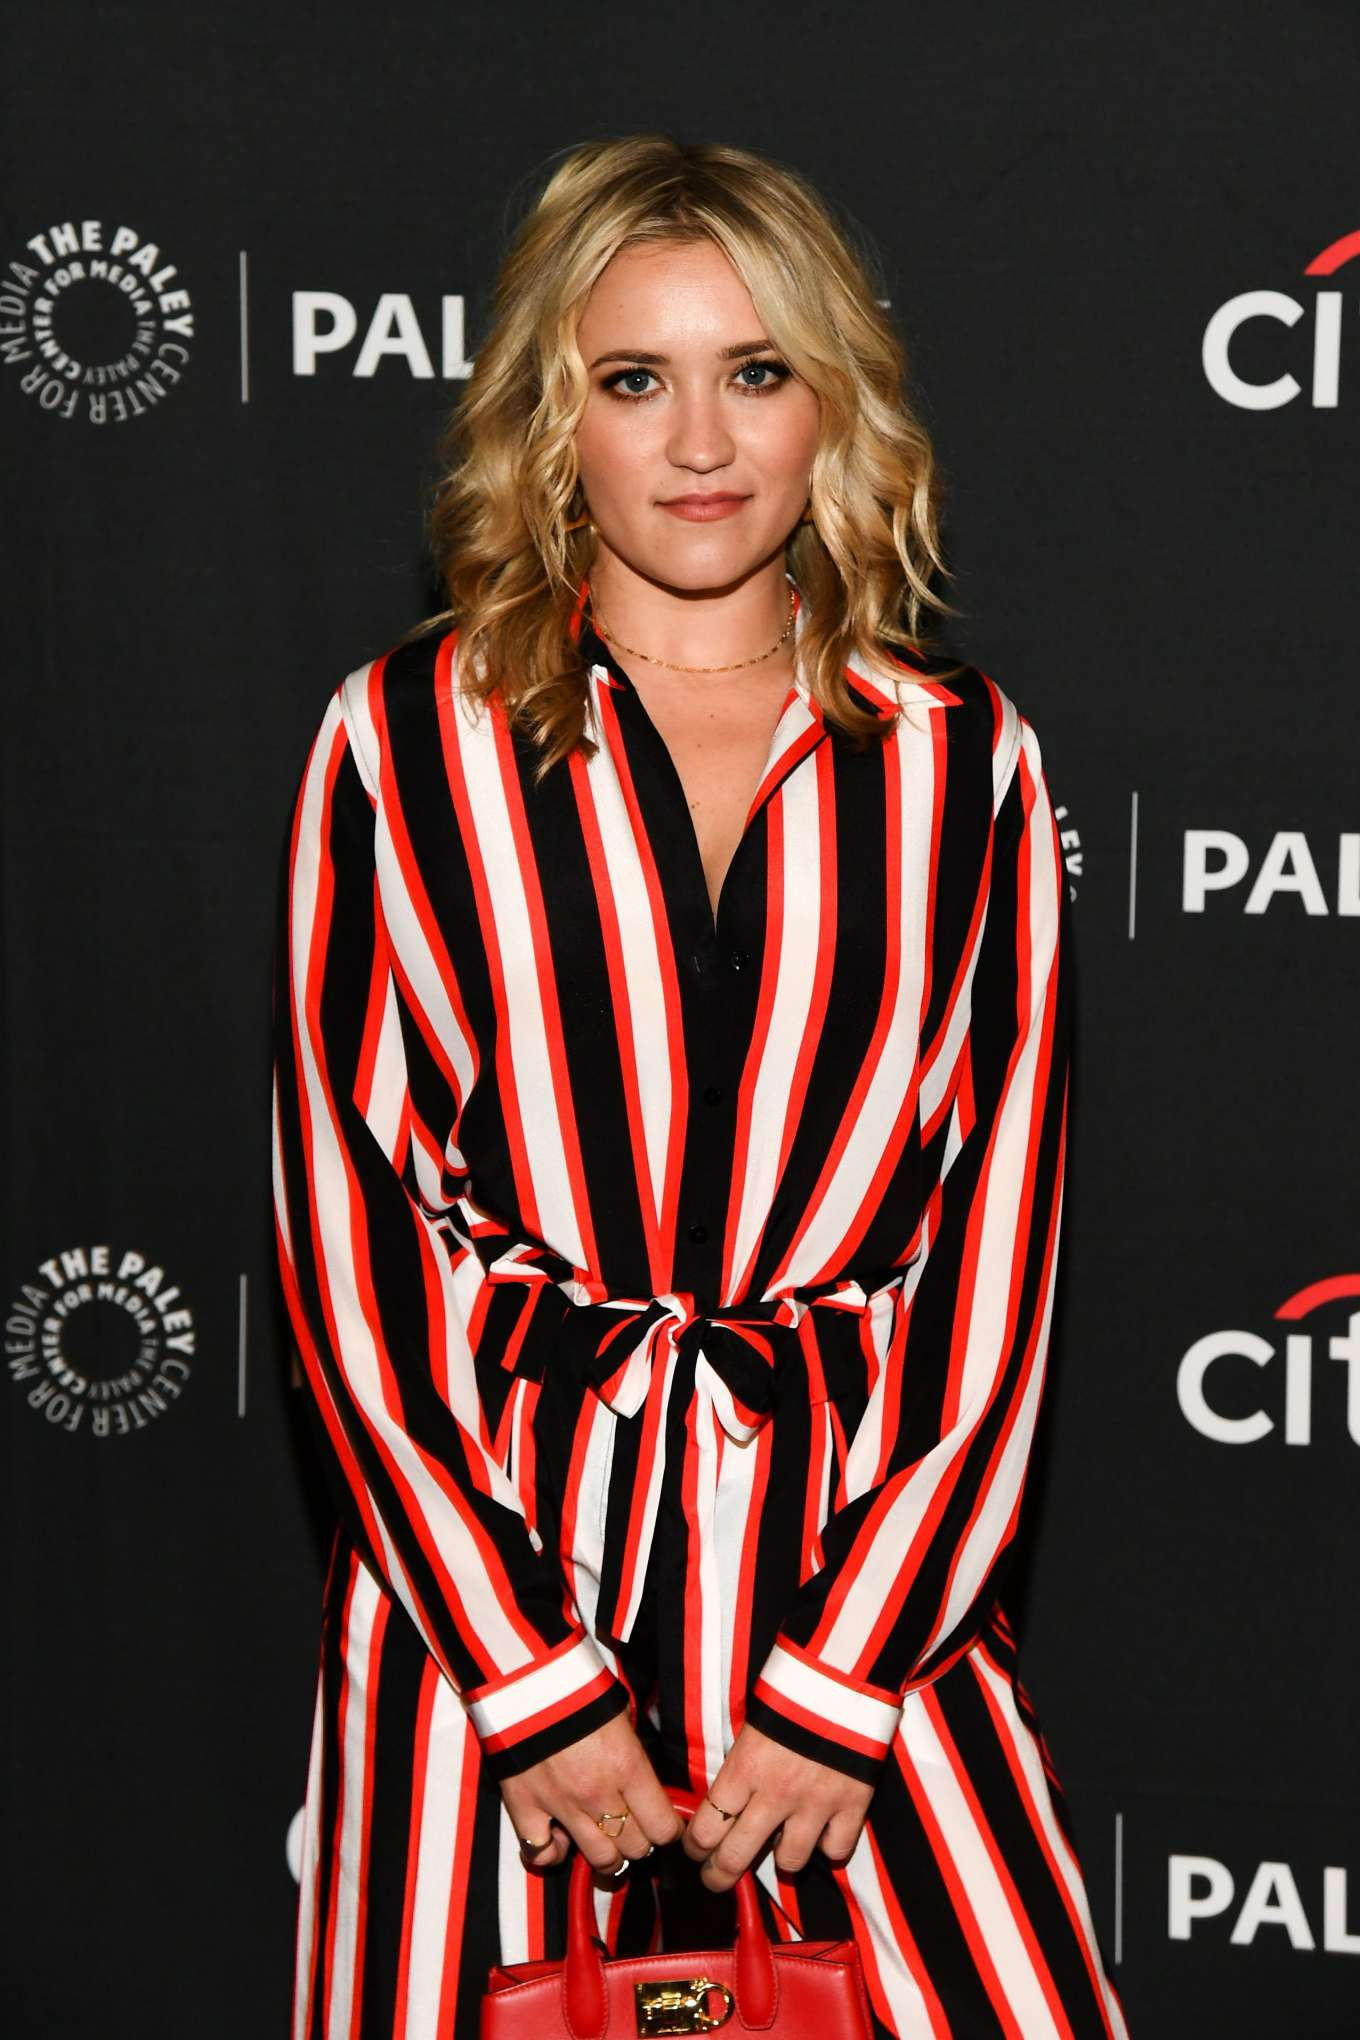 Emily Osment - 'Almost Family' TV Show at PaleyFest in Los Angeles